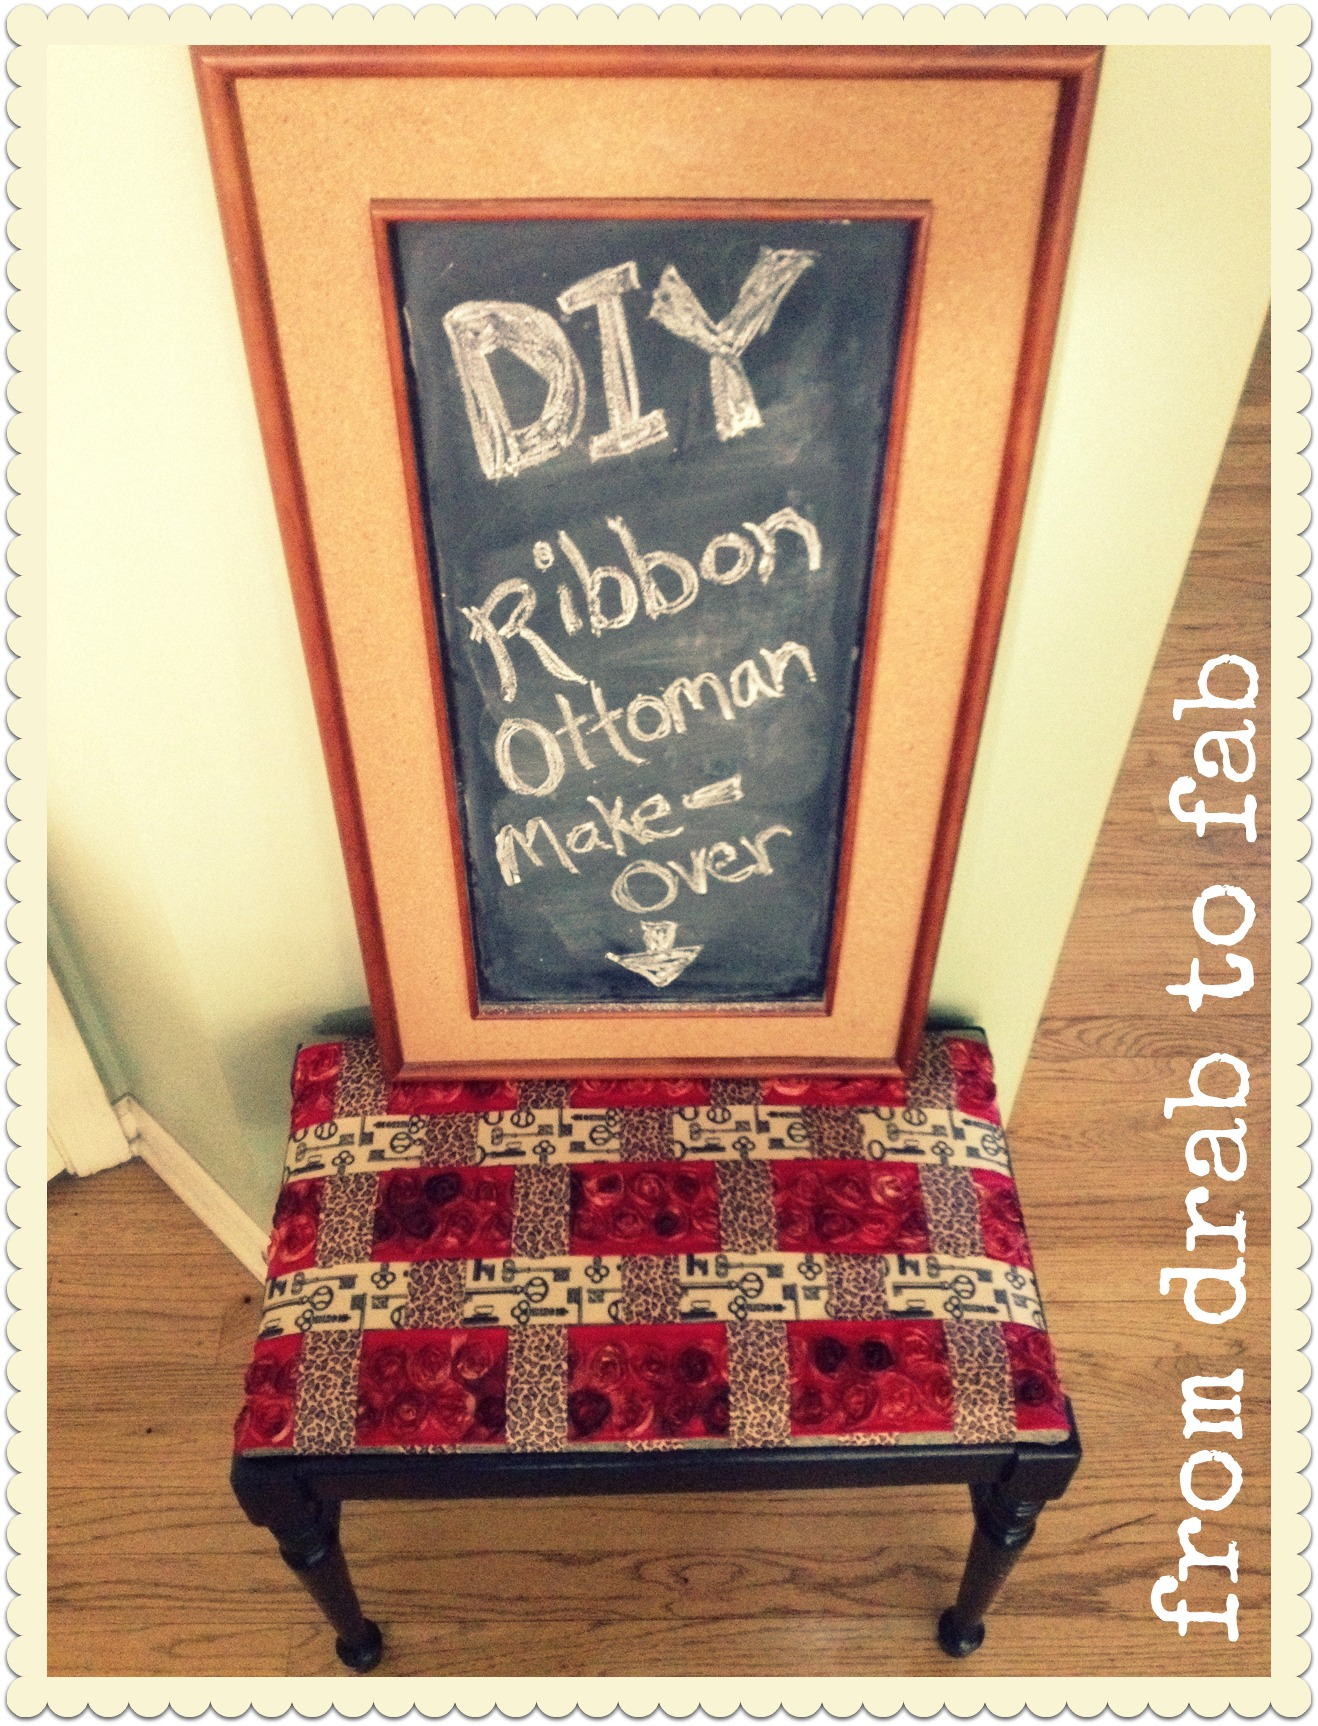 DIY Ribbon Ottoman Make-Over